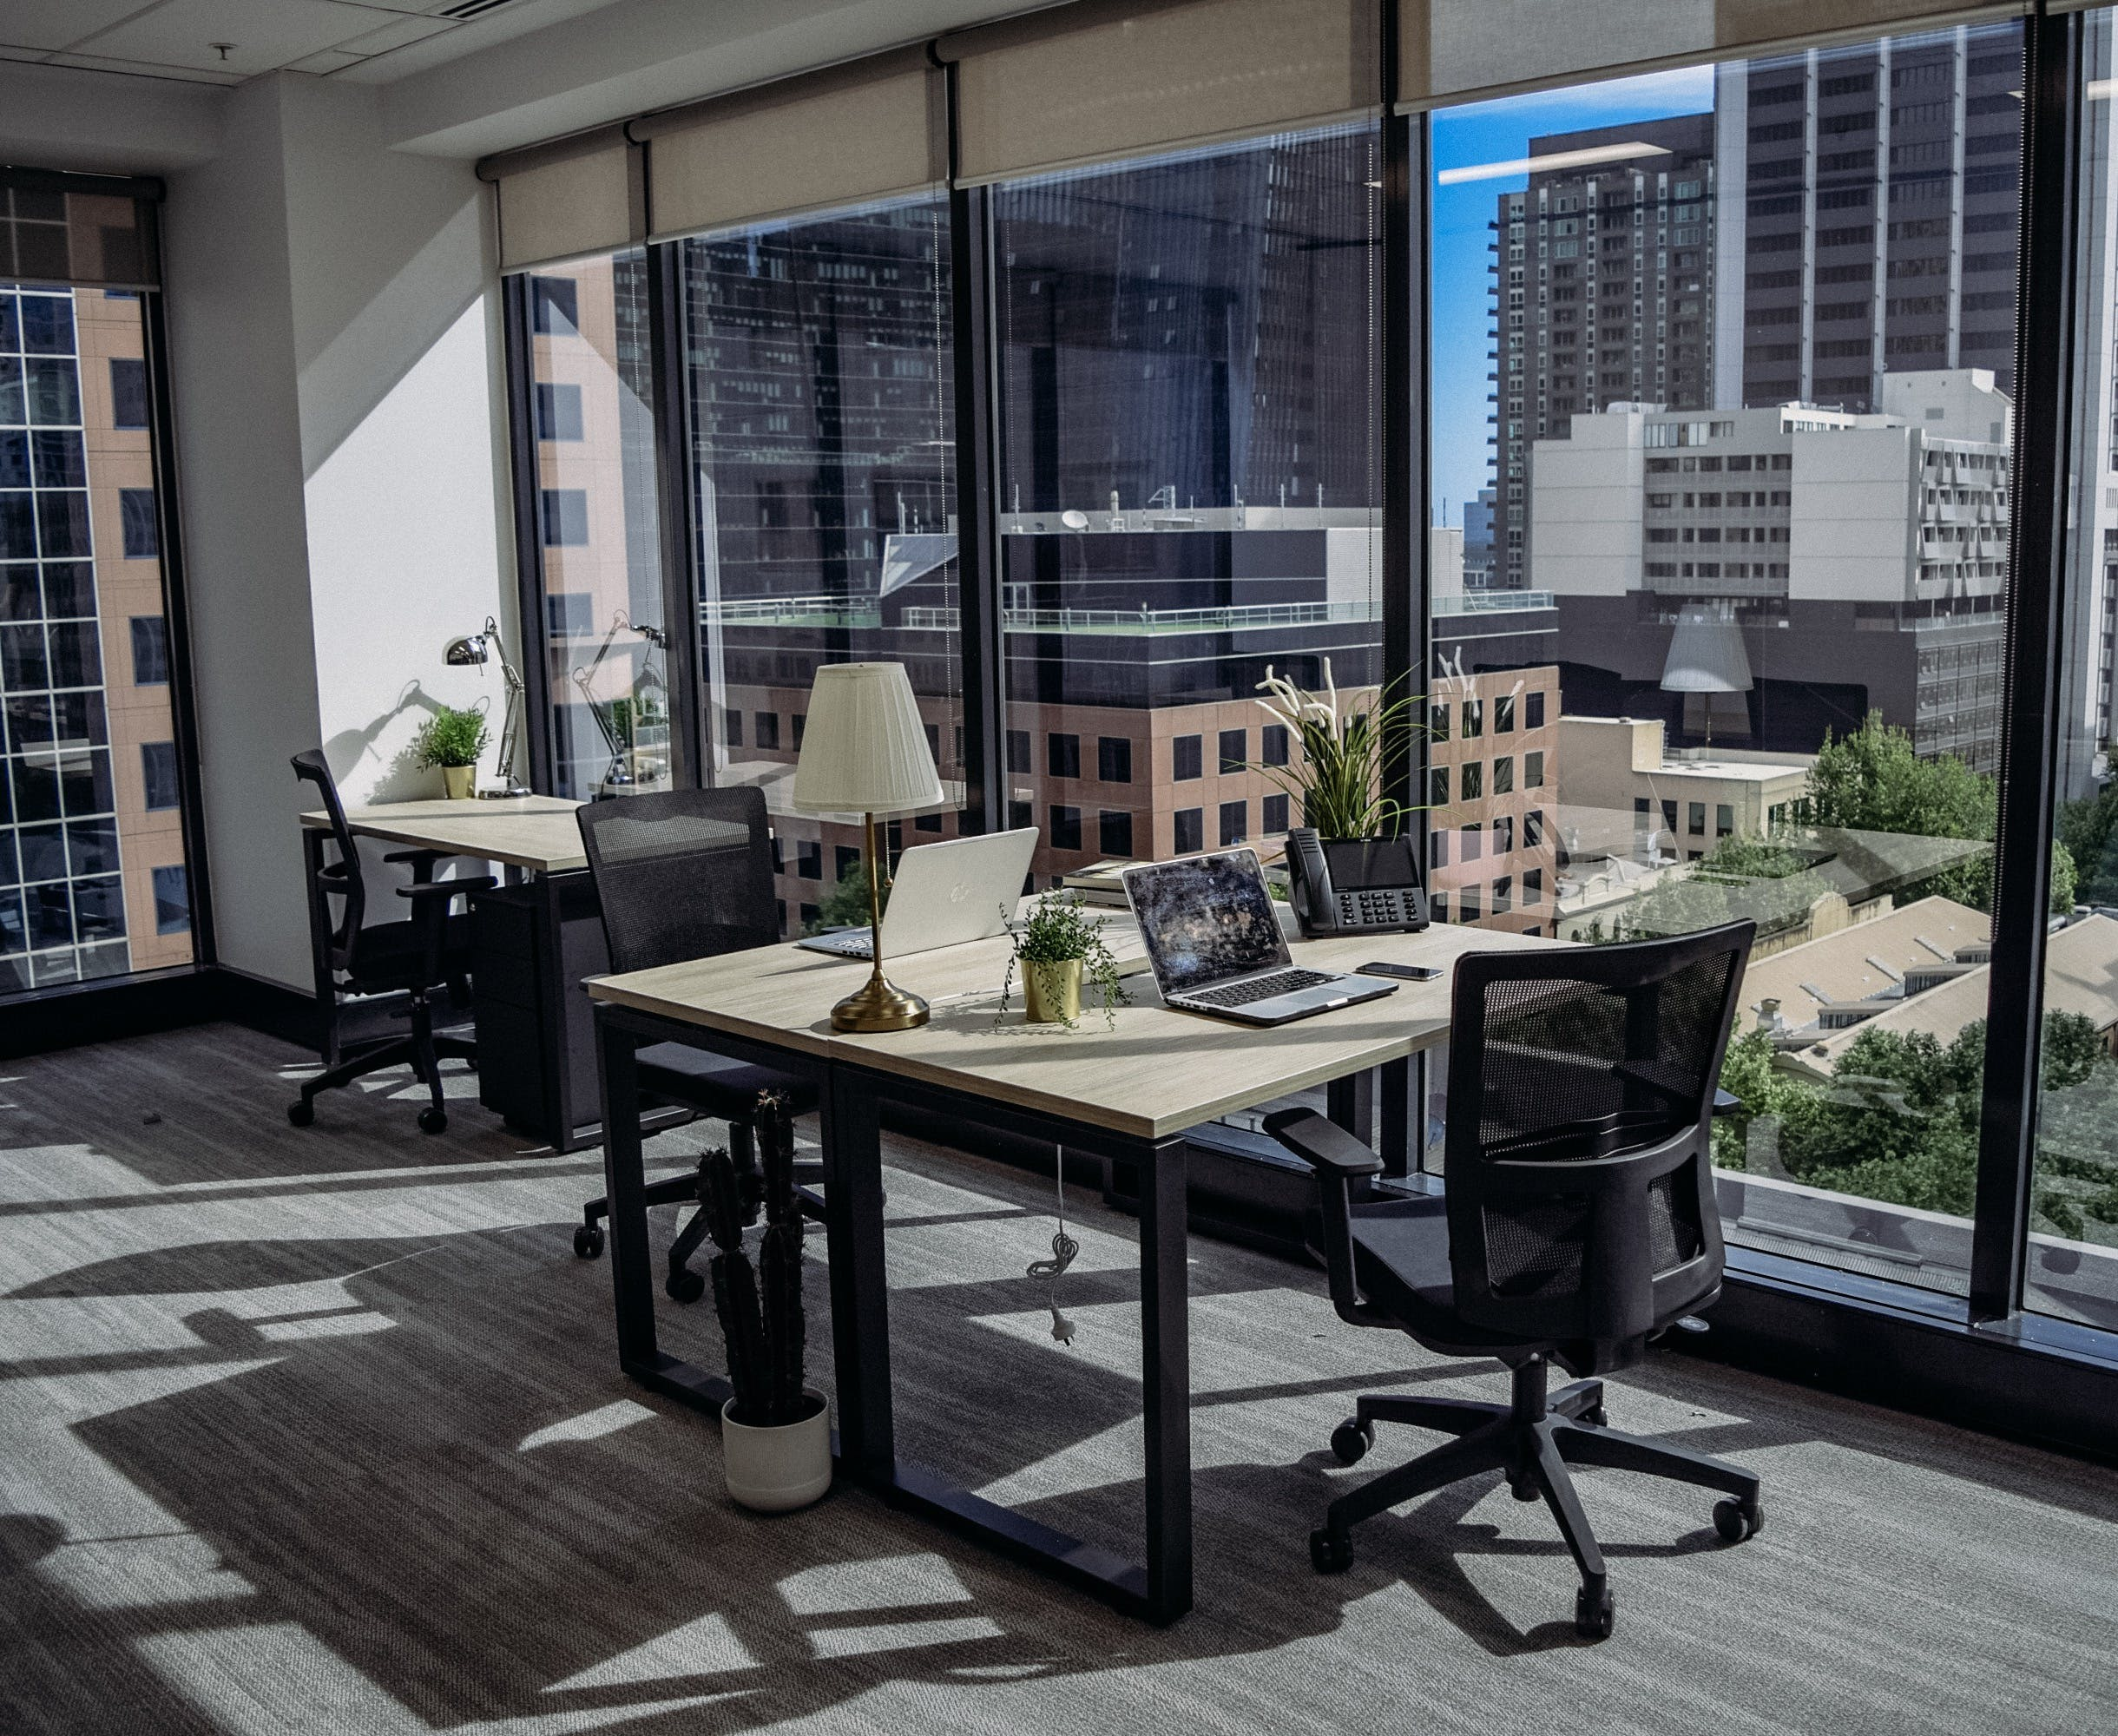 Suite 746, private office at Altitude CoWork, image 3